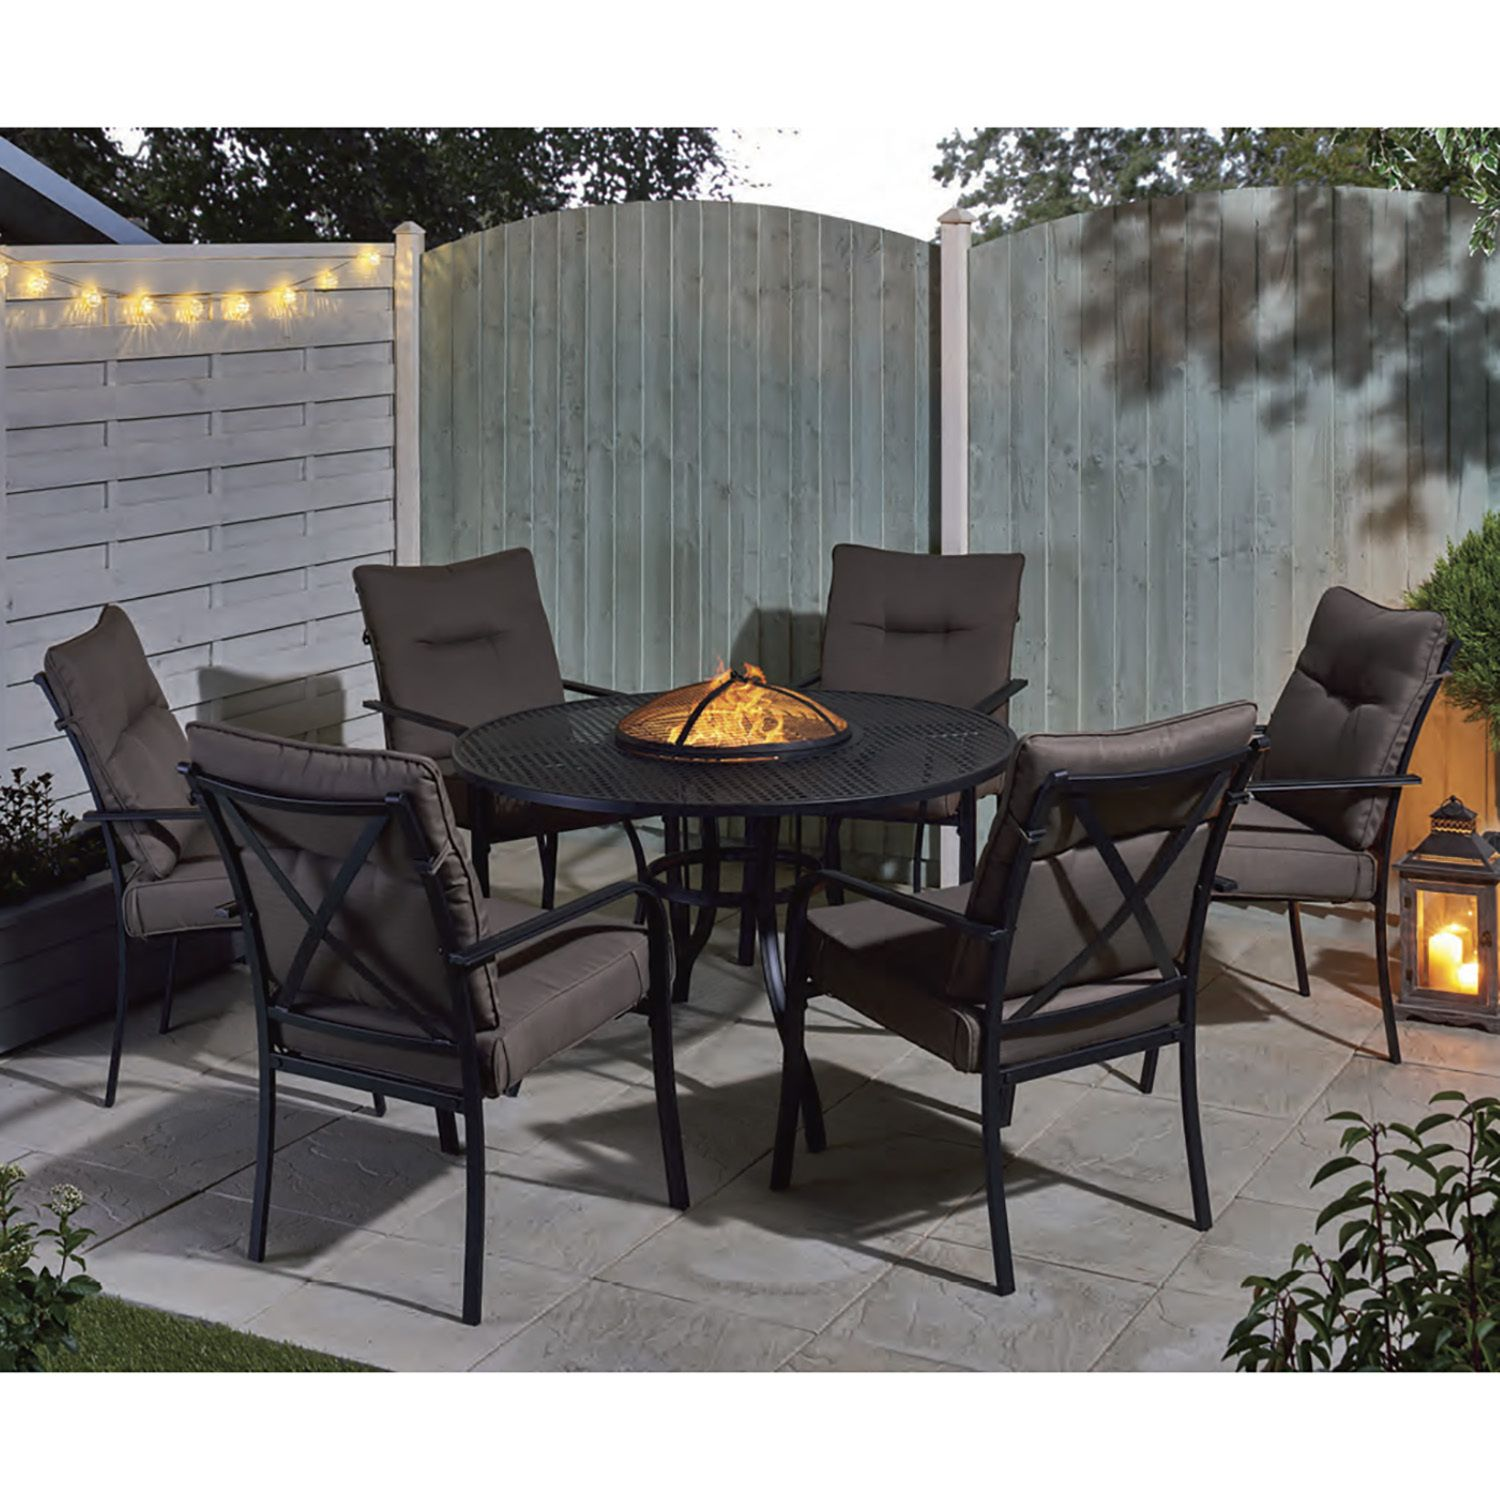 catalonia firepit and ice bucket dining set things outdoor rh pinterest com